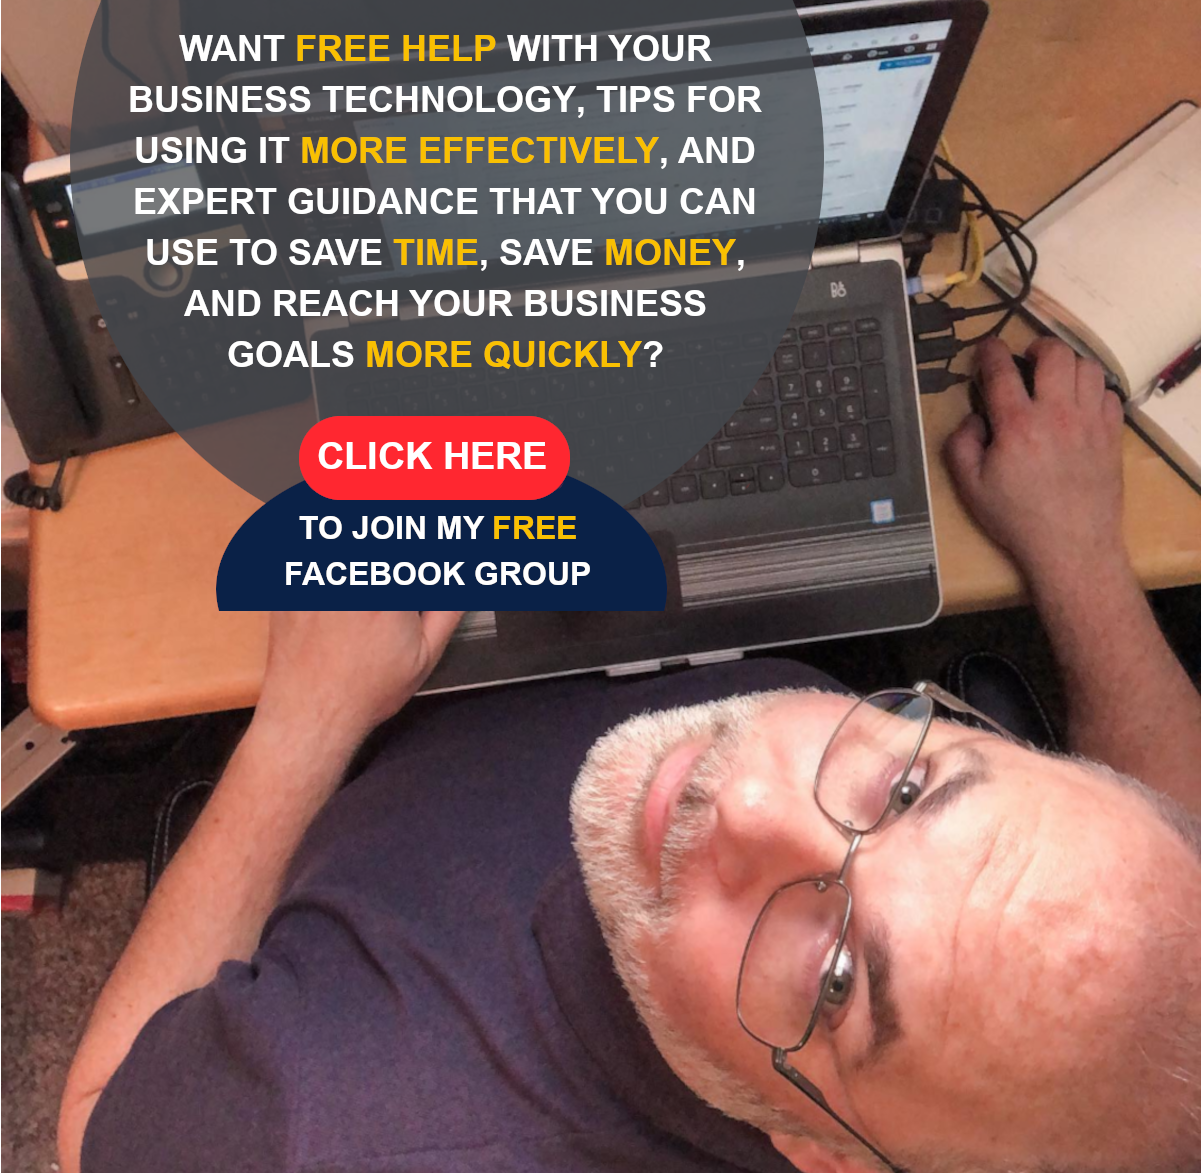 Want FREE help with your Business Technology, tips for using it more effectively, and epert guidance that you can use to save time, save money, and reach your business goals more quickly? Click Here to join my FREE Facebook Group!